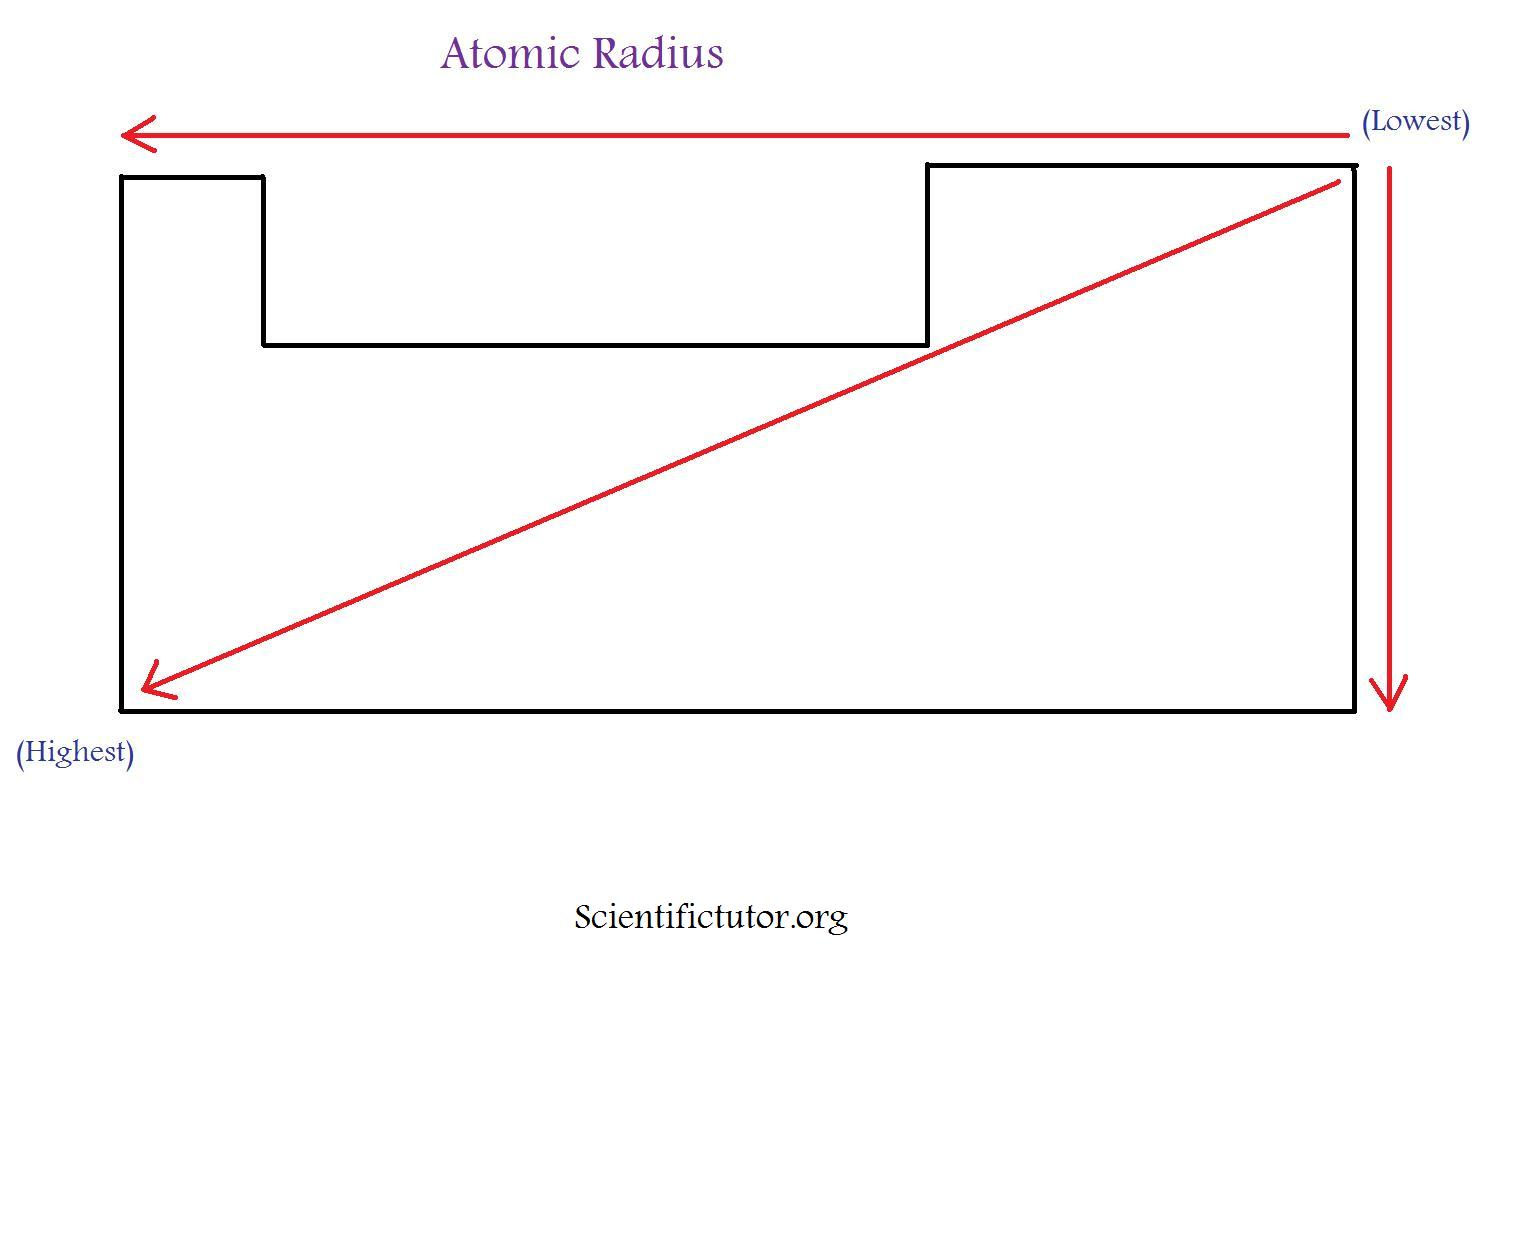 Chem atomic radius scientific tutor cartoon periodic table atomic radius urtaz